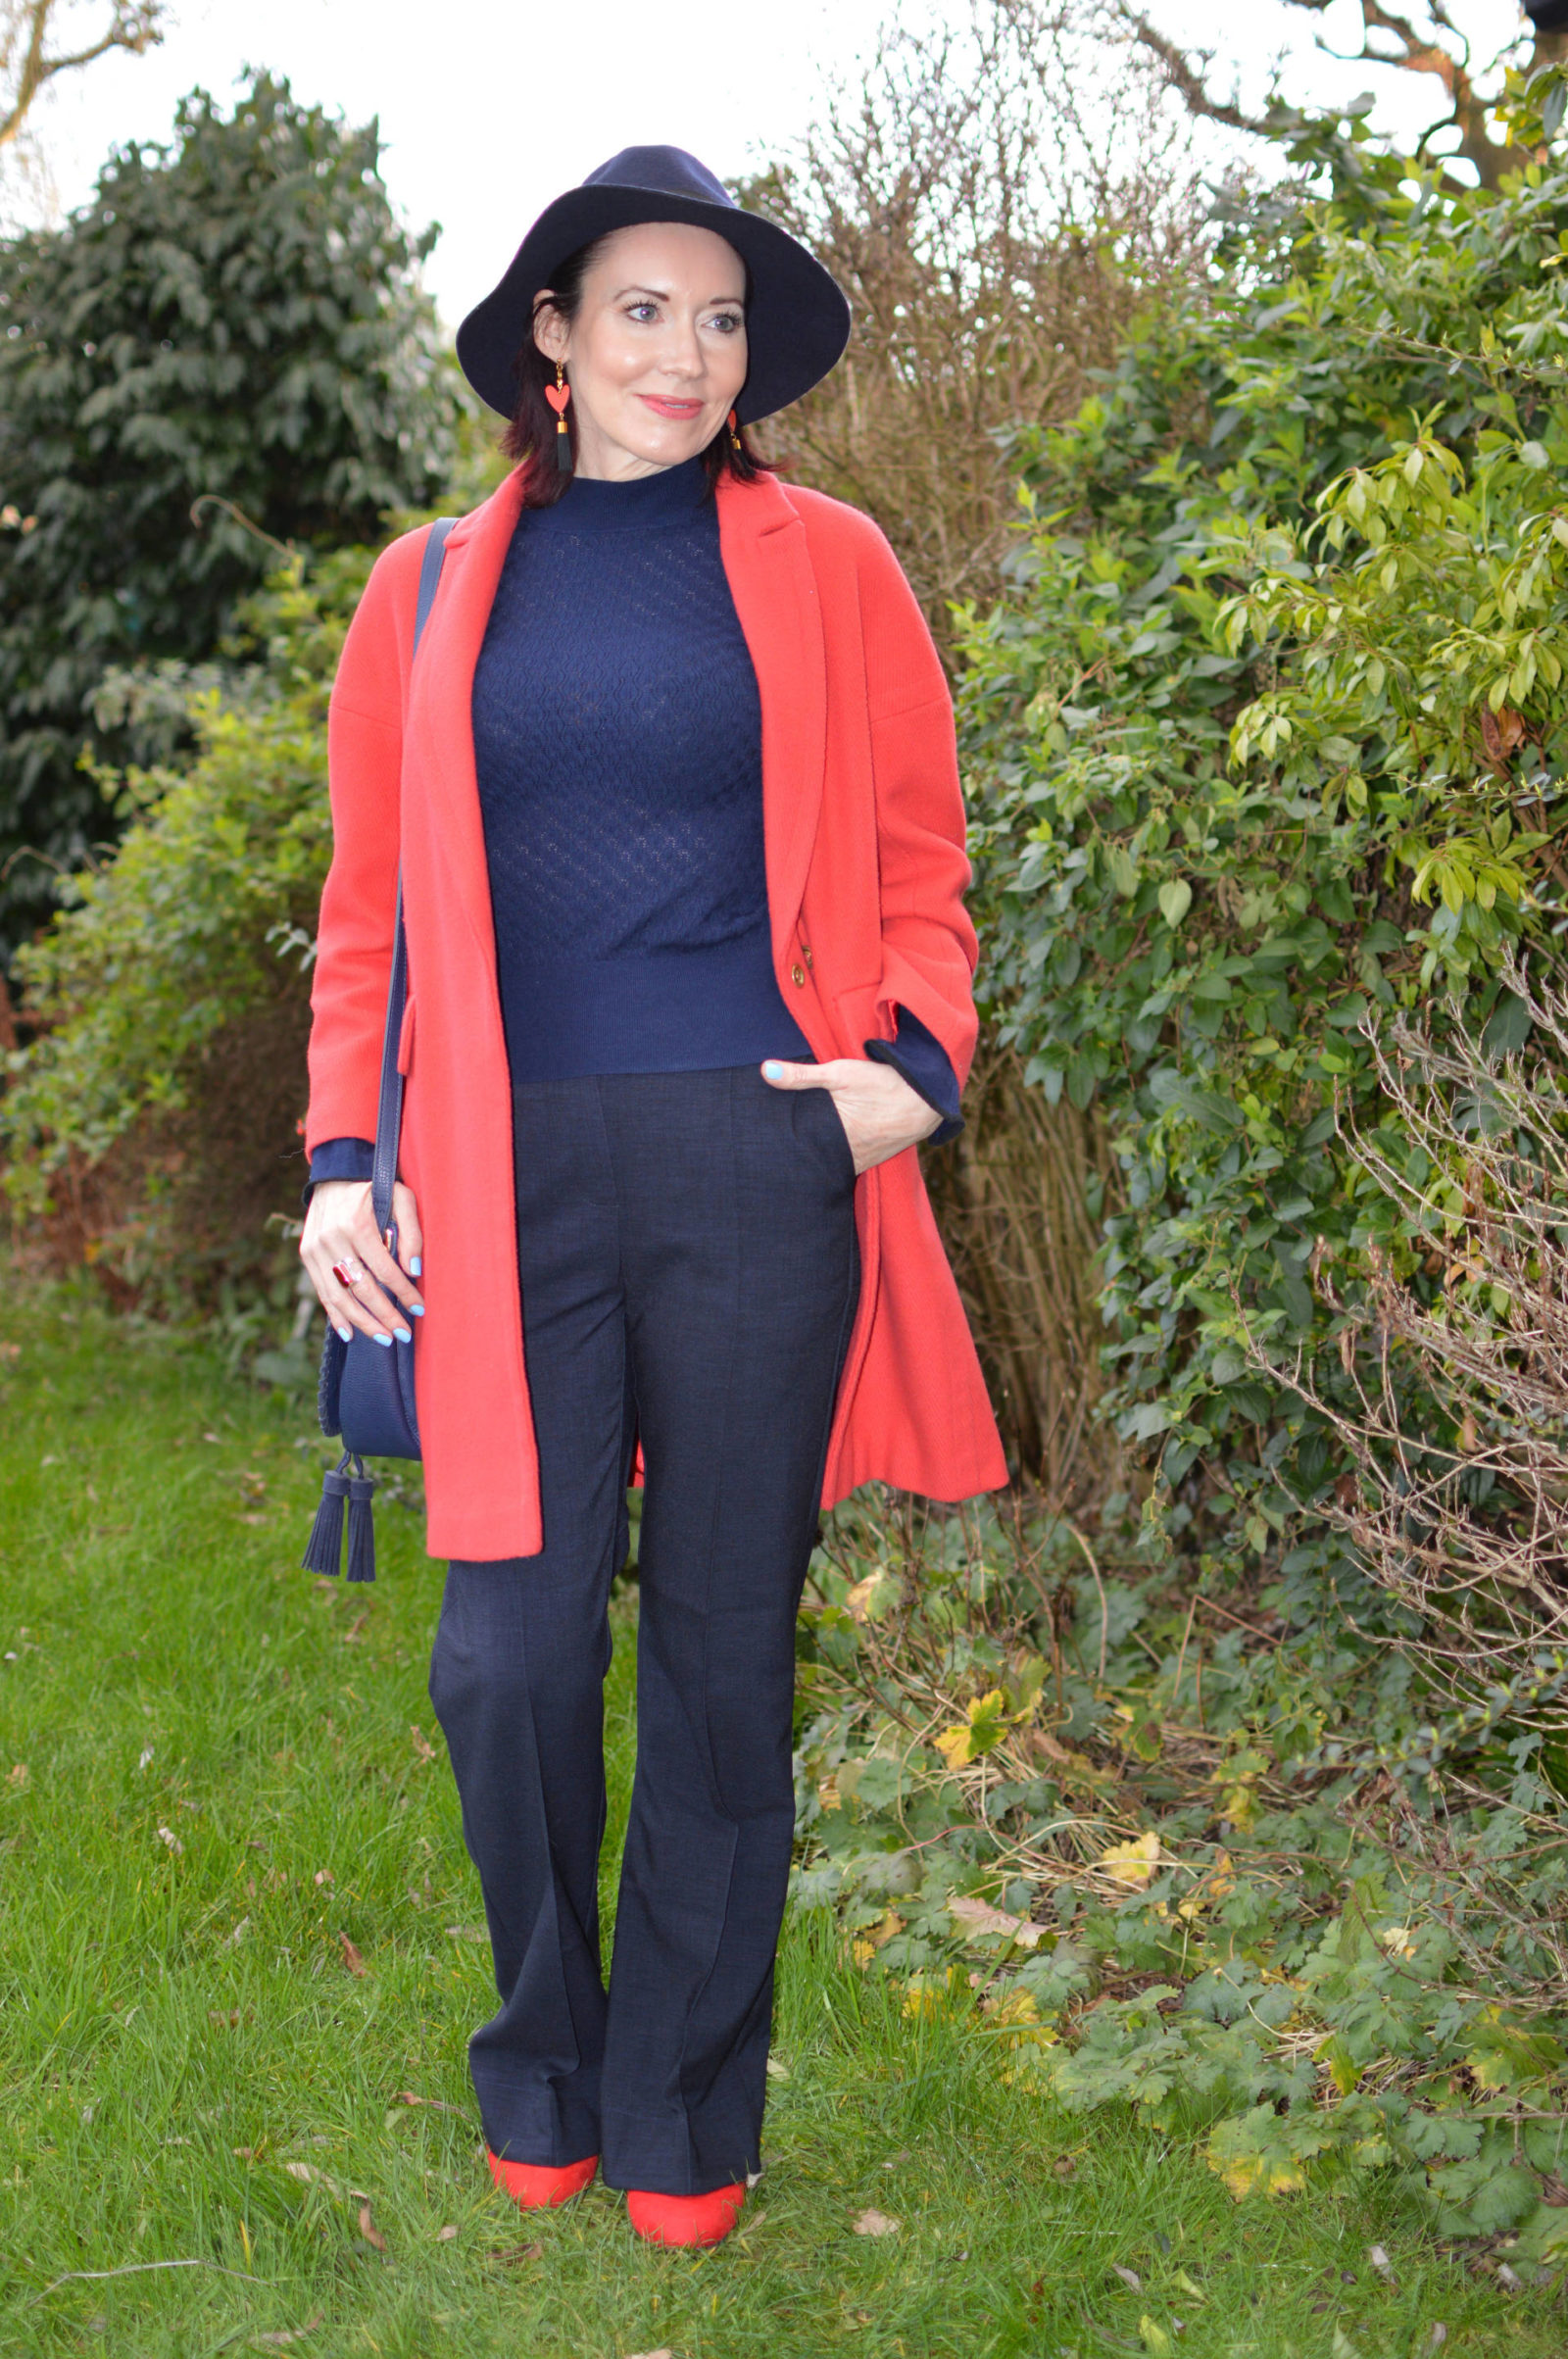 Classic navy trousers and sweater with a red coat